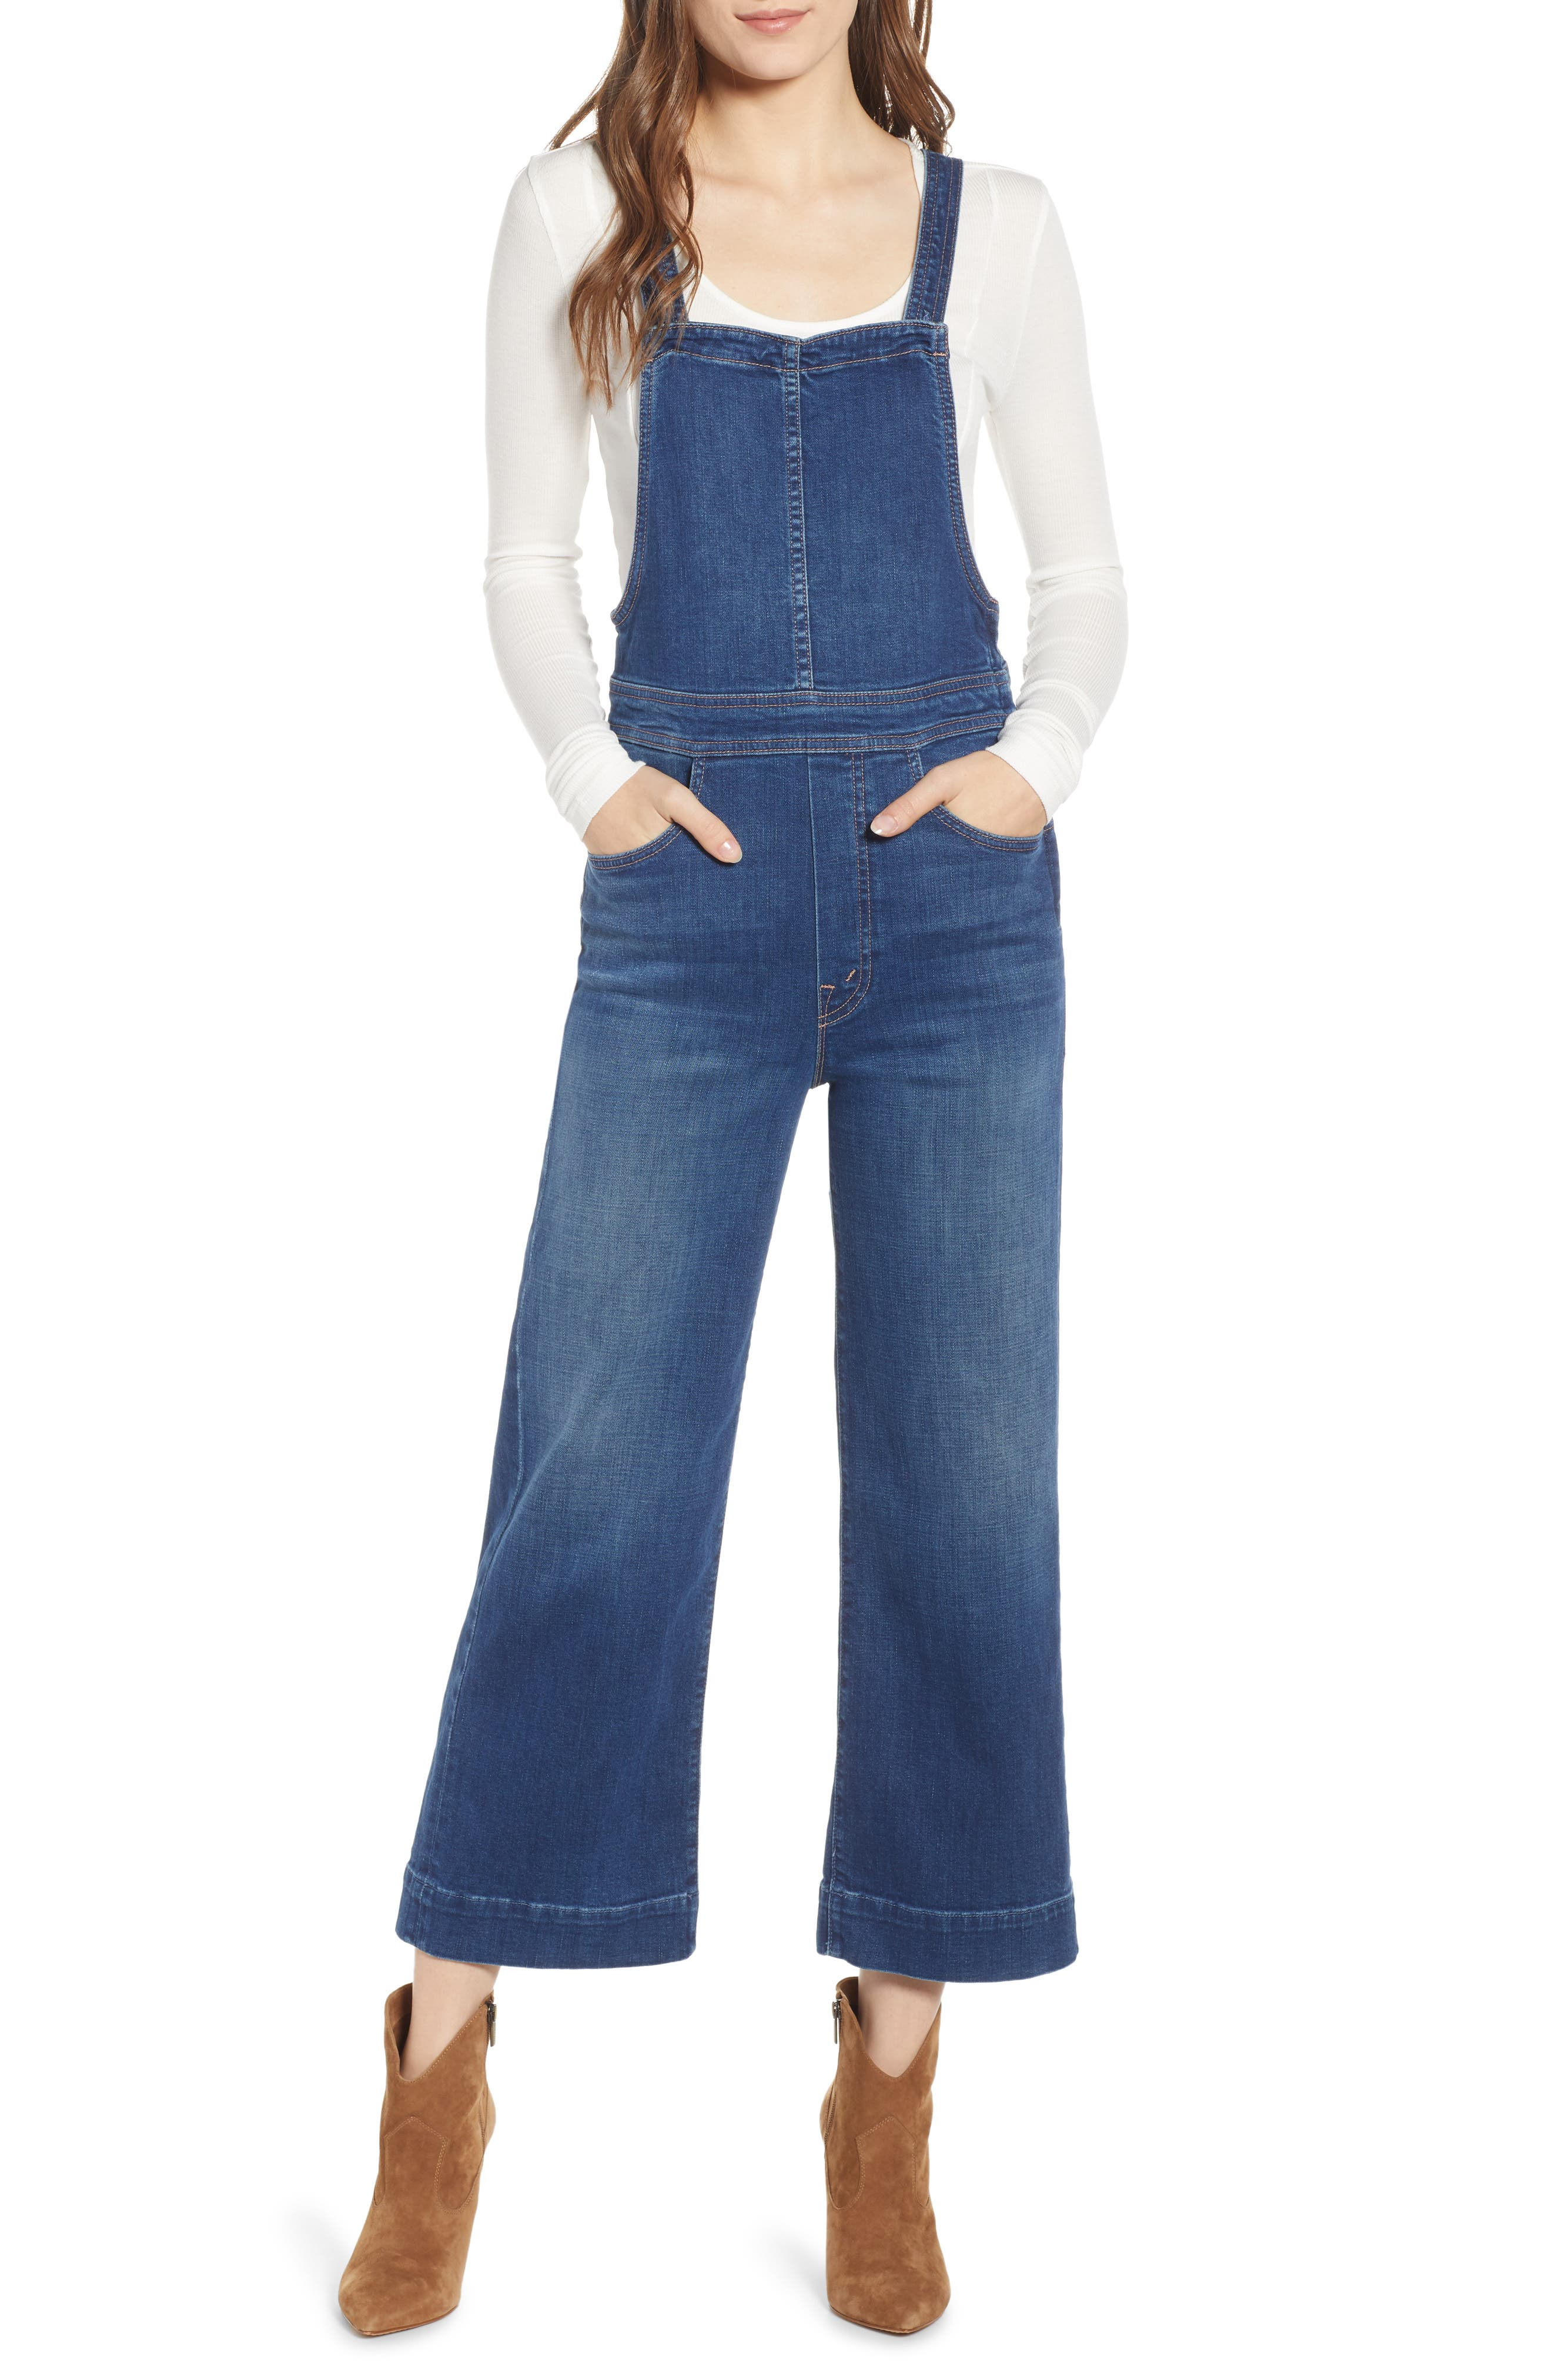 Greaser Cropped Wide-Leg Denim Overalls in What I Had Before I